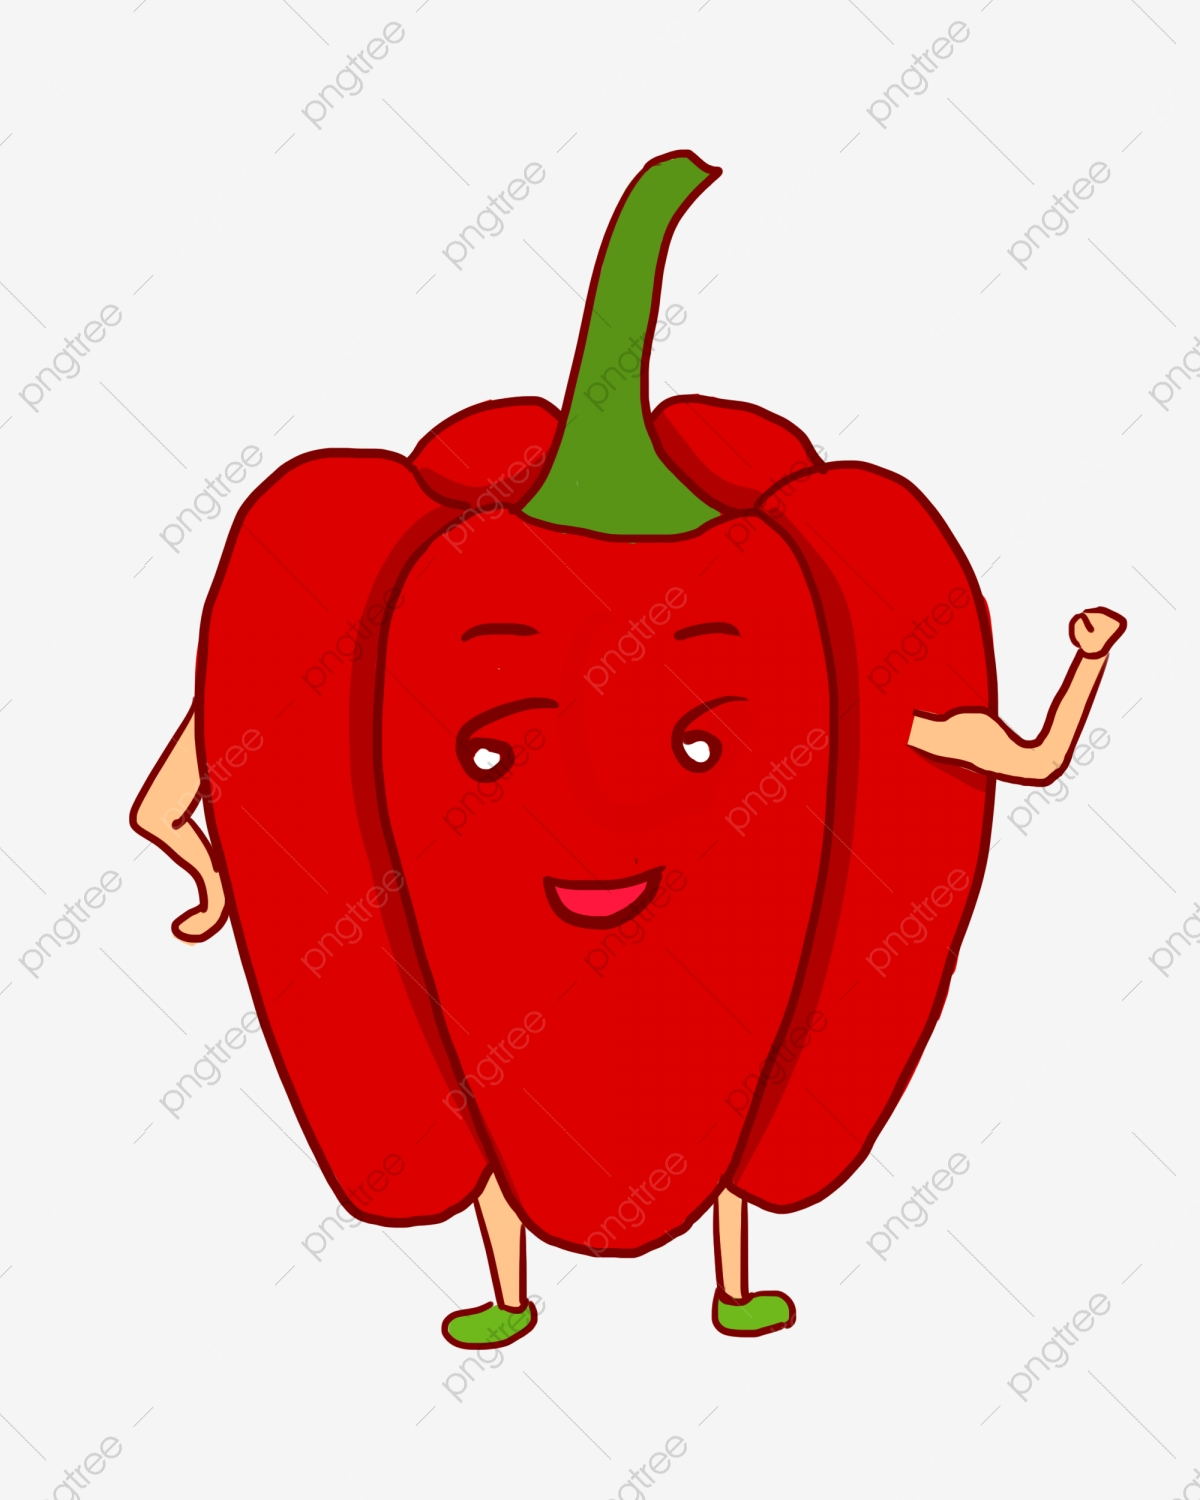 Hand Drawn Chili Illustration Creative Chili Illustration Red Pepper Fresh Pepper Hot Chili Fatty Chili Hand Drawn Chili Illustration Png Transparent Clipart Image And Psd File For Free Download